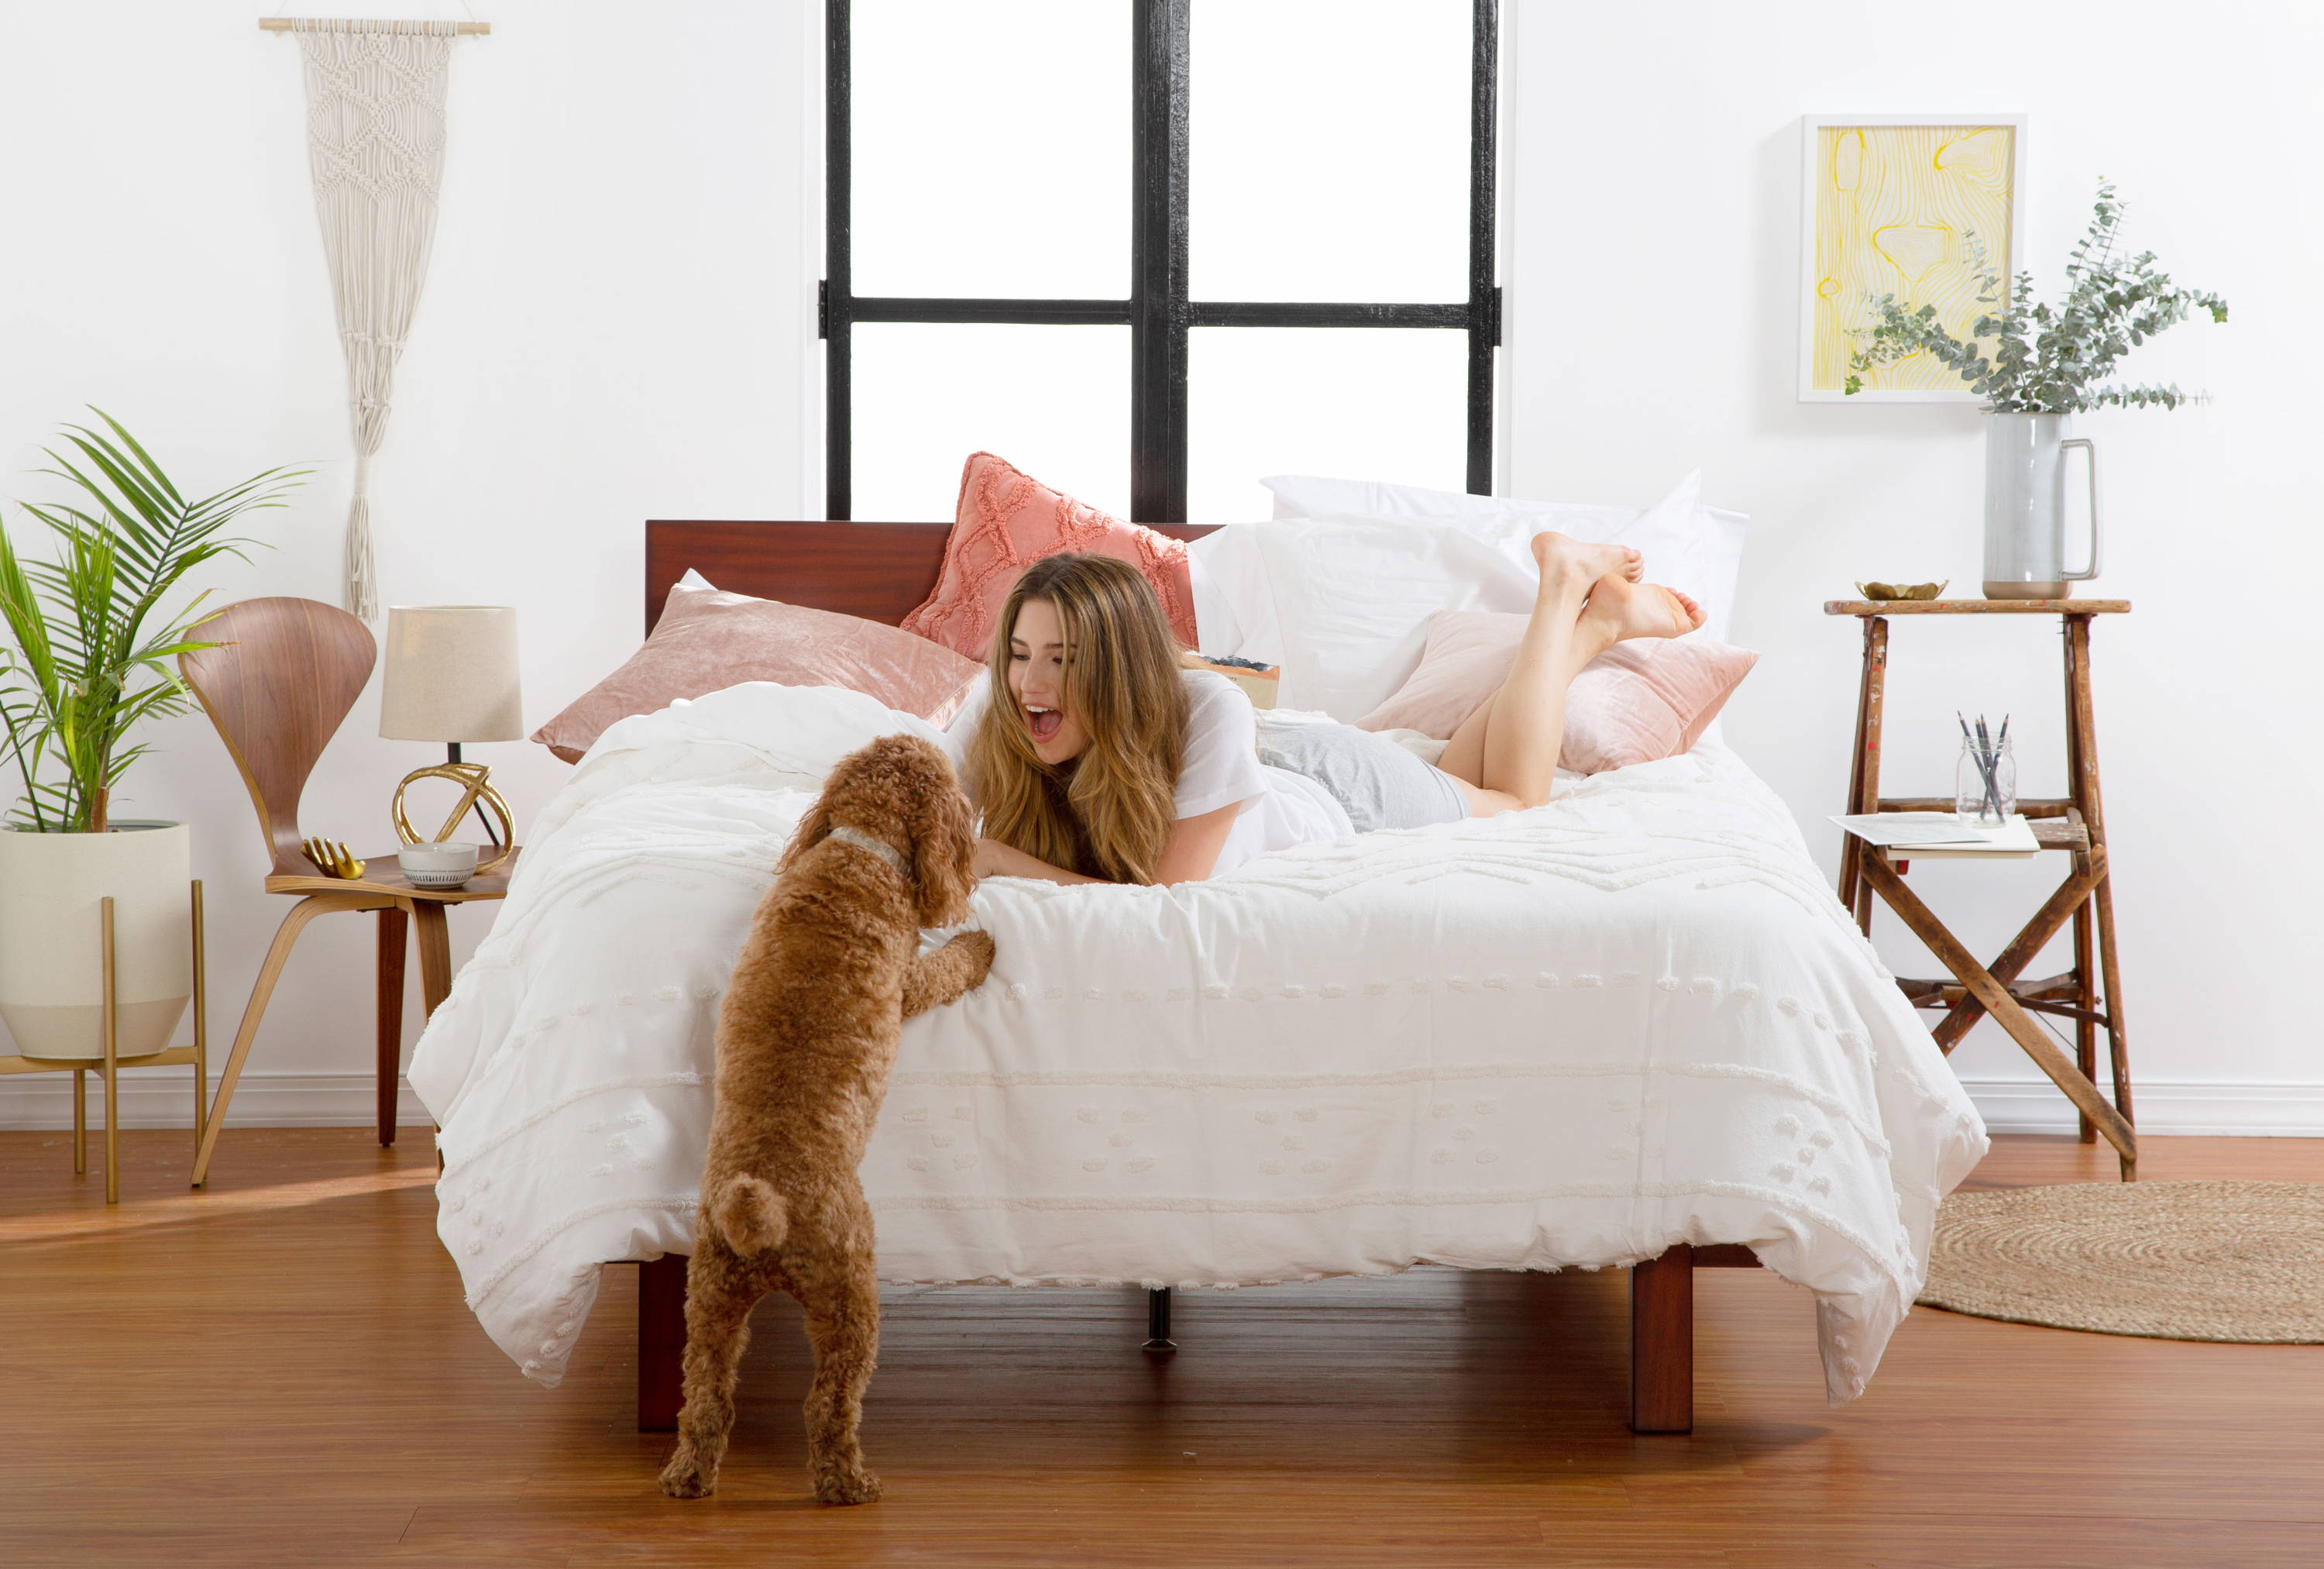 Person in a room laying in bed with a small dog trying to jump into the bed. Image